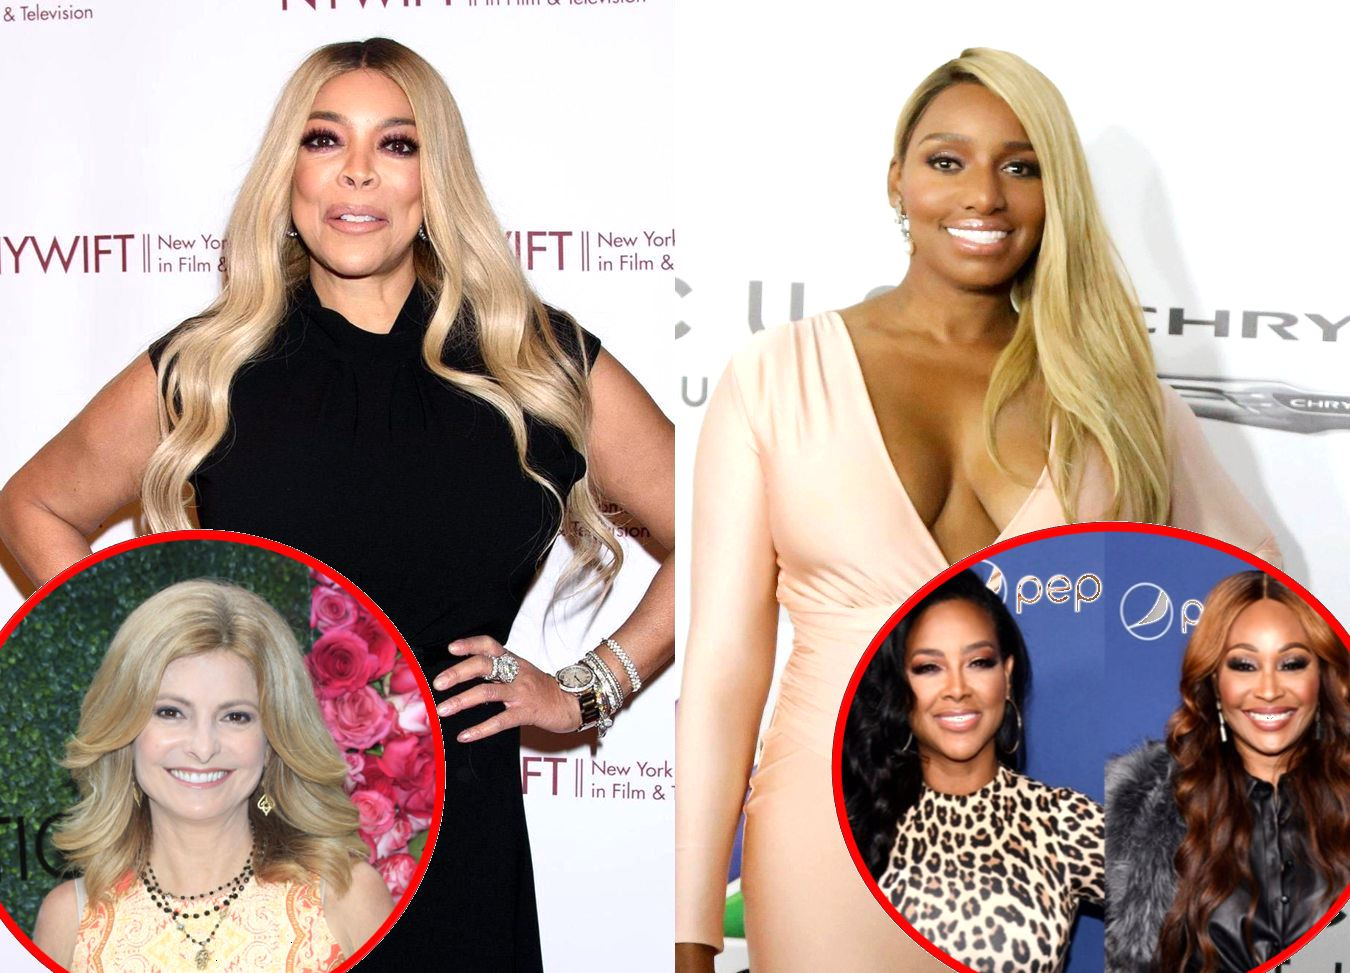 Wendy Williams Reveals the Real Reason Nene Leakes Hired Attorney Lisa Bloom as Nene Slams RHOA Co-Stars Kenya and Cynthia as Bullies